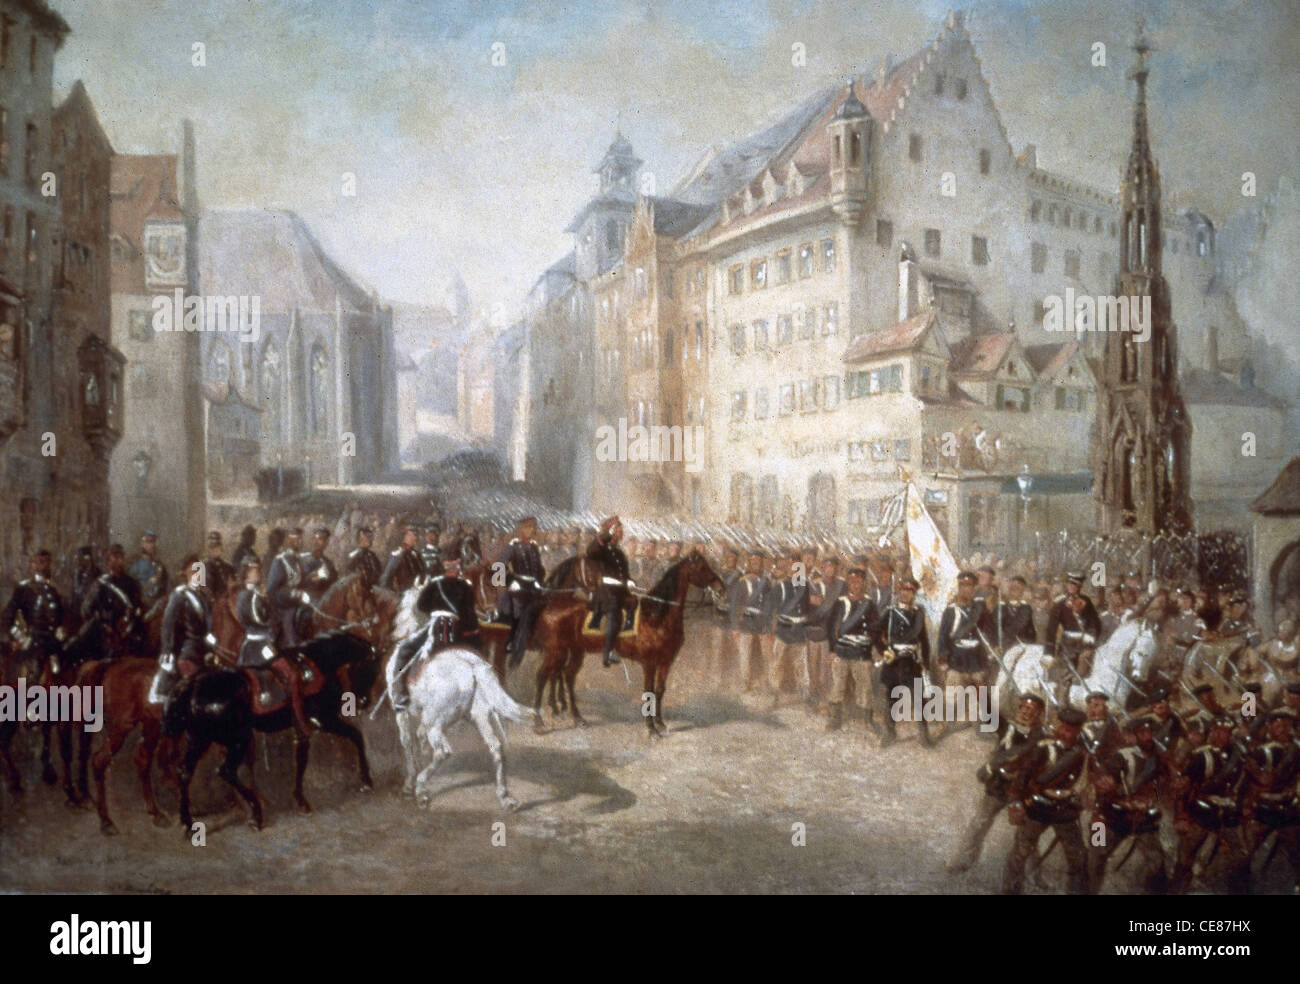 Austro-Prussian War. Parade of troops in the Market Square in Nuremberg during the Prussian occupation (1866). By - Stock Image